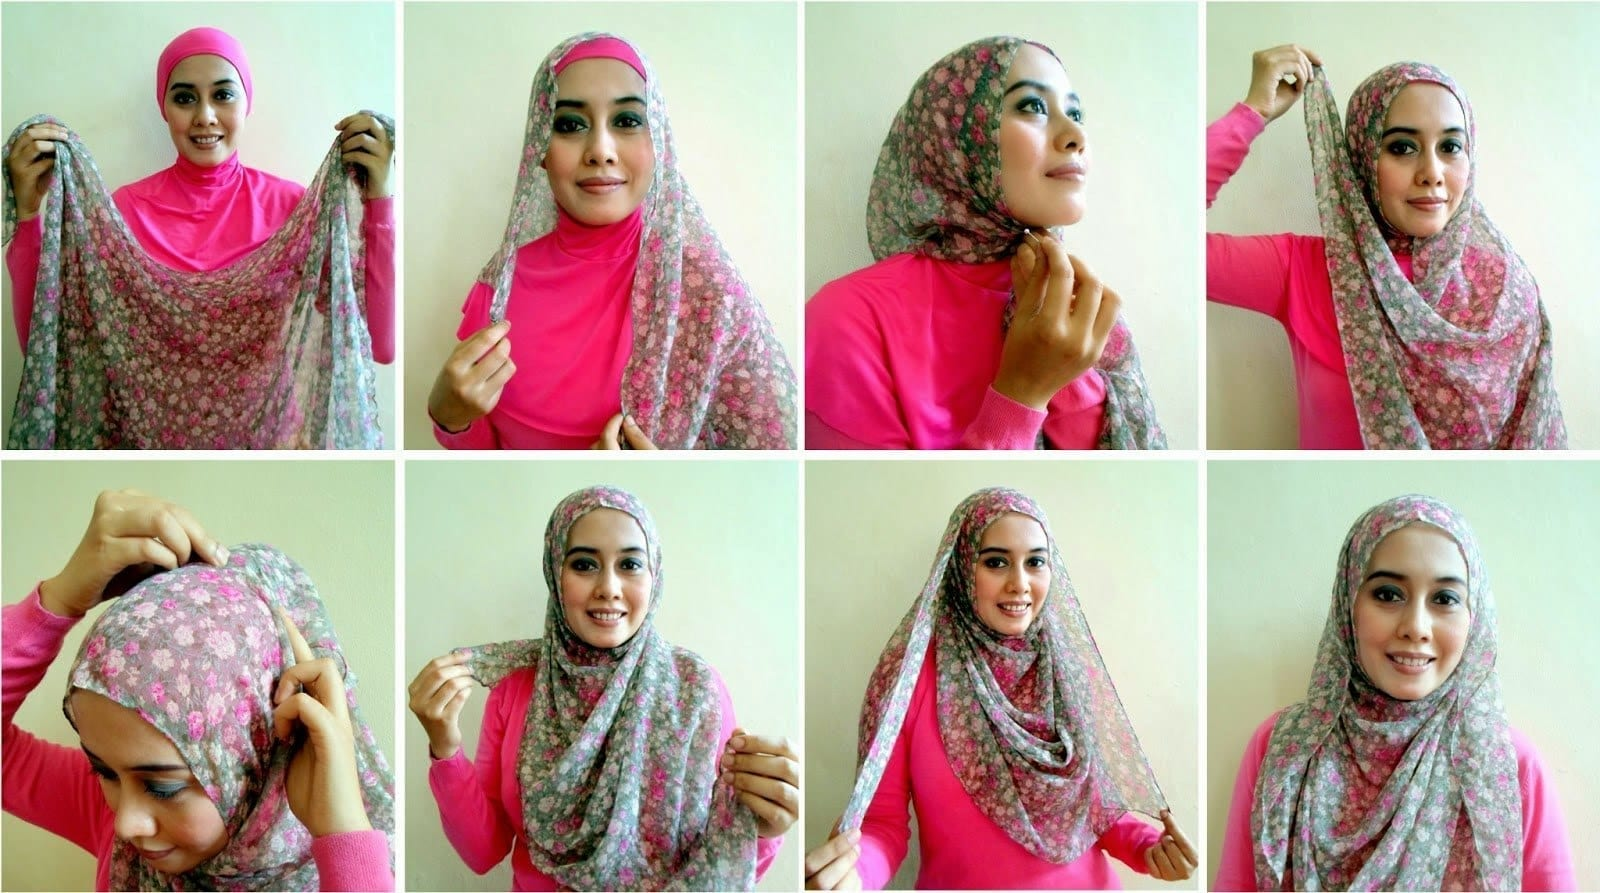 exotic-way Pashmina Hijab Styles-18 Ways to Wear Hijab With Pashmina